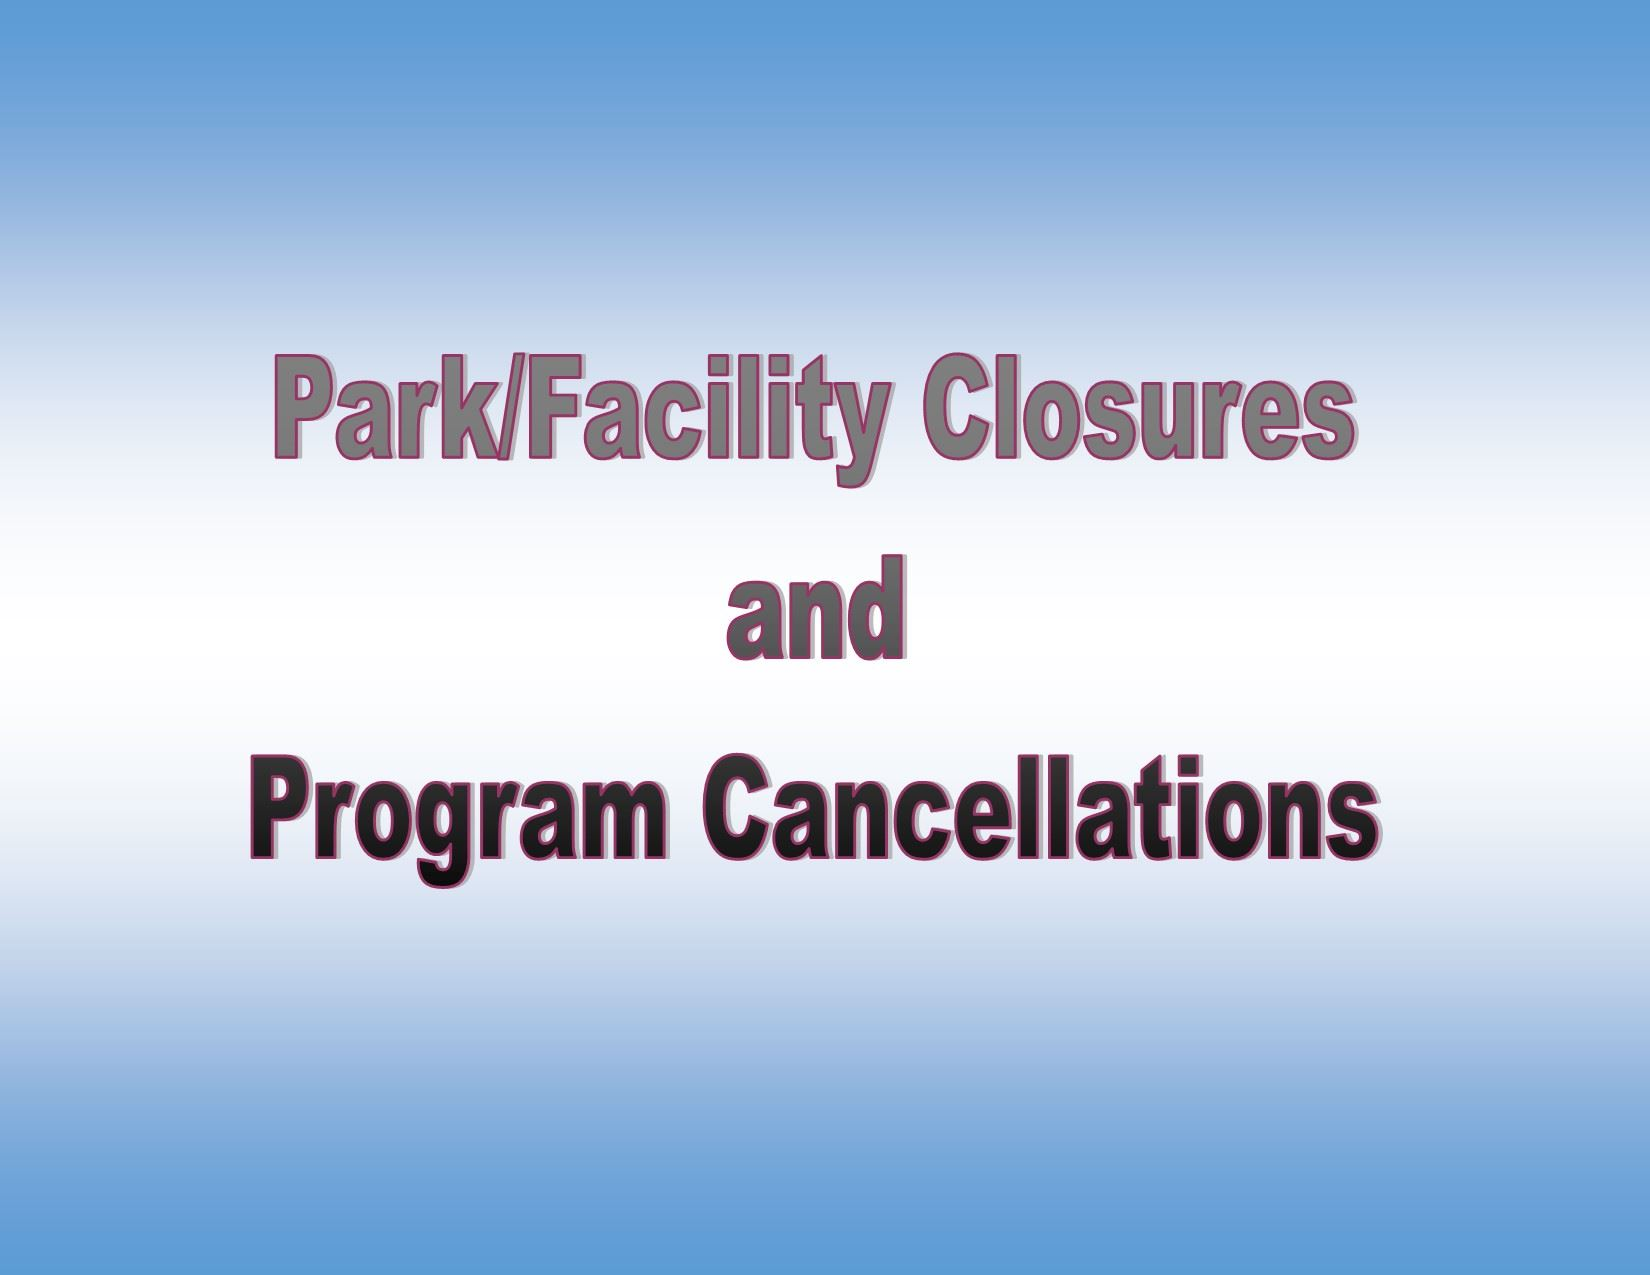 Closures and Cancellations landscape